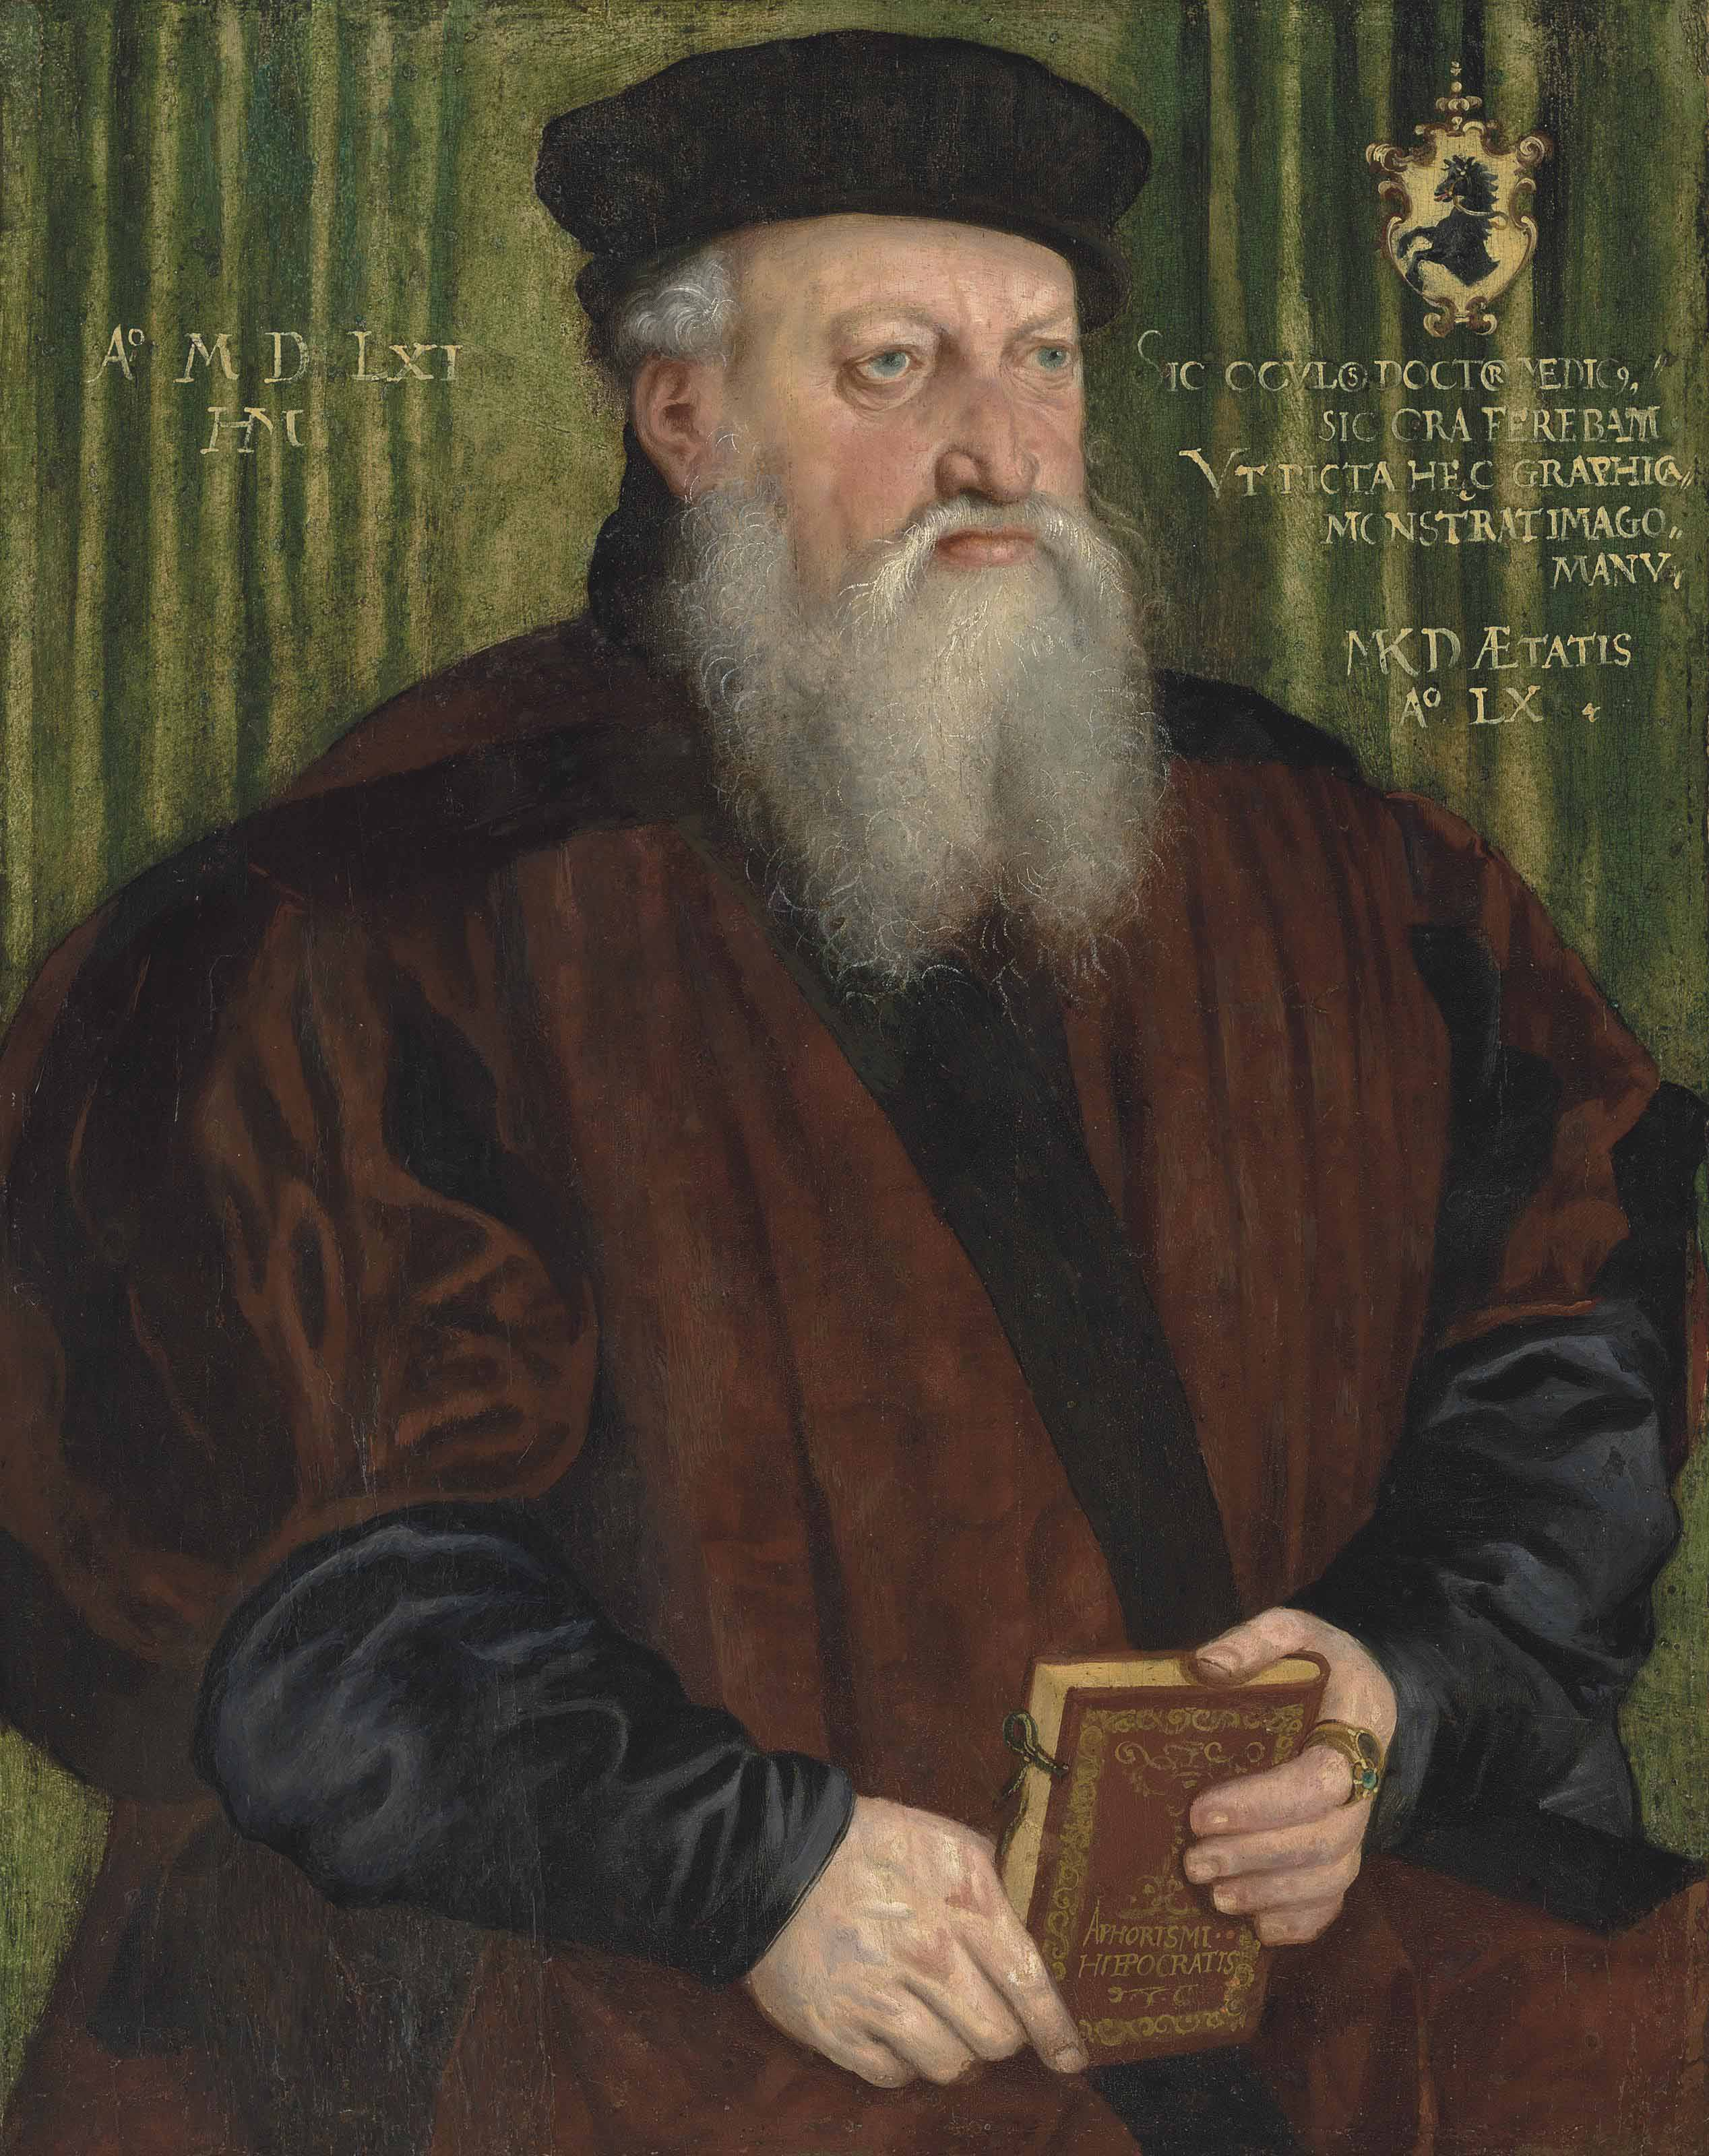 Portrait of Martin Klostermair (b. 1502), aged 60, half-length, in a brown coat and black hat, holding a book